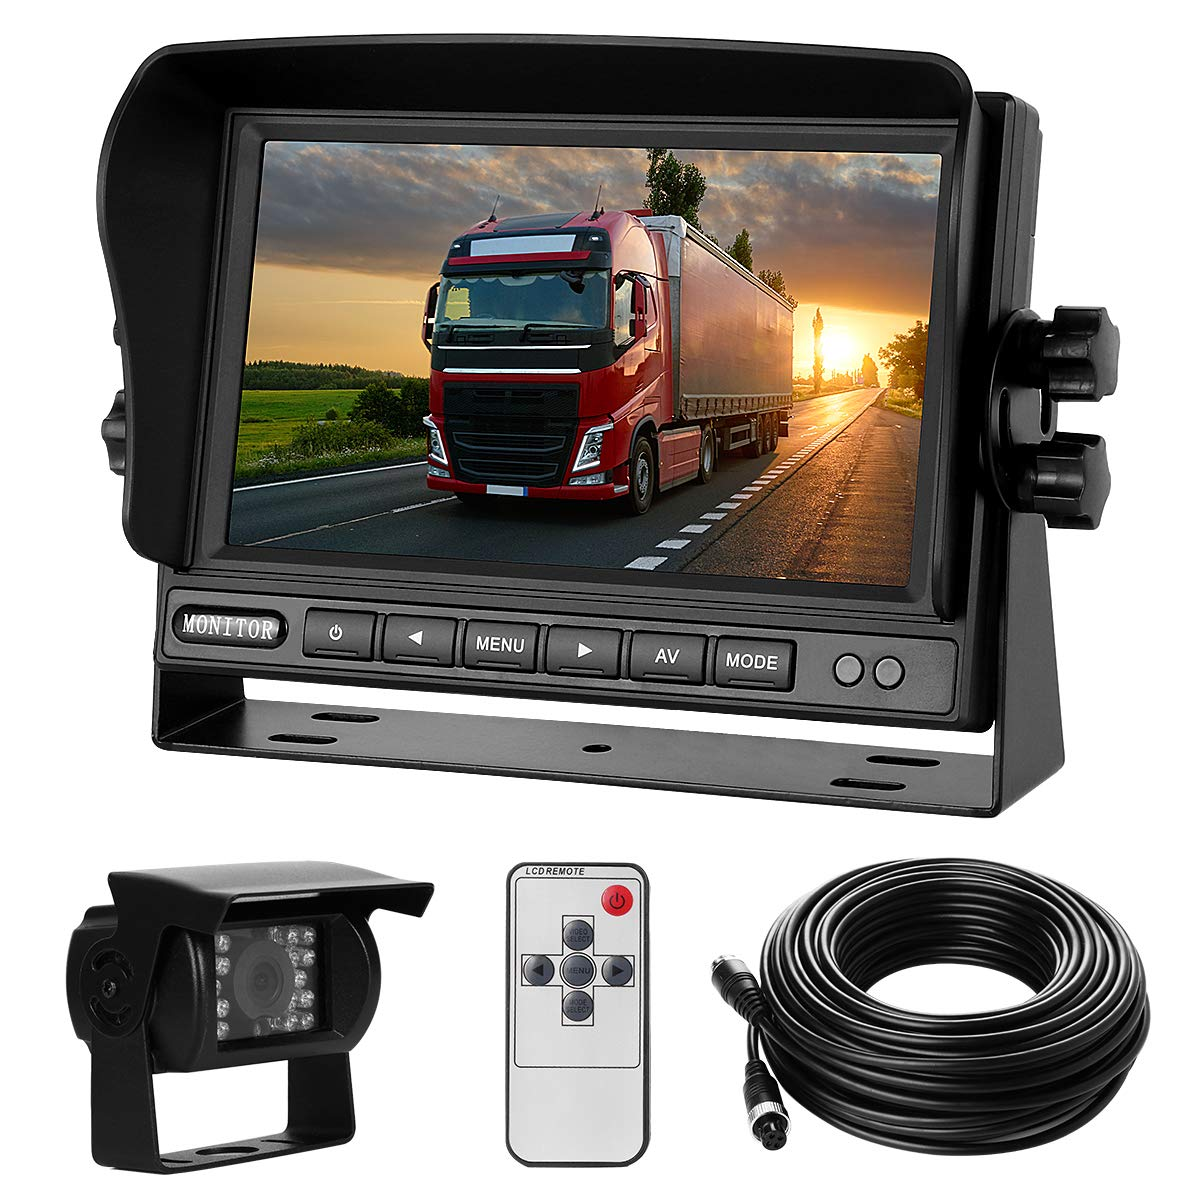 Backup Camera System Kit 7'' LCD Reversing Monitor+170 ° Wide Angle, 18 IR Night Vision,IP68 Waterproof Rear View Back Up Camera for Truck/RV/Trailer/Bus/Vans/Vehicle. by YEDDY